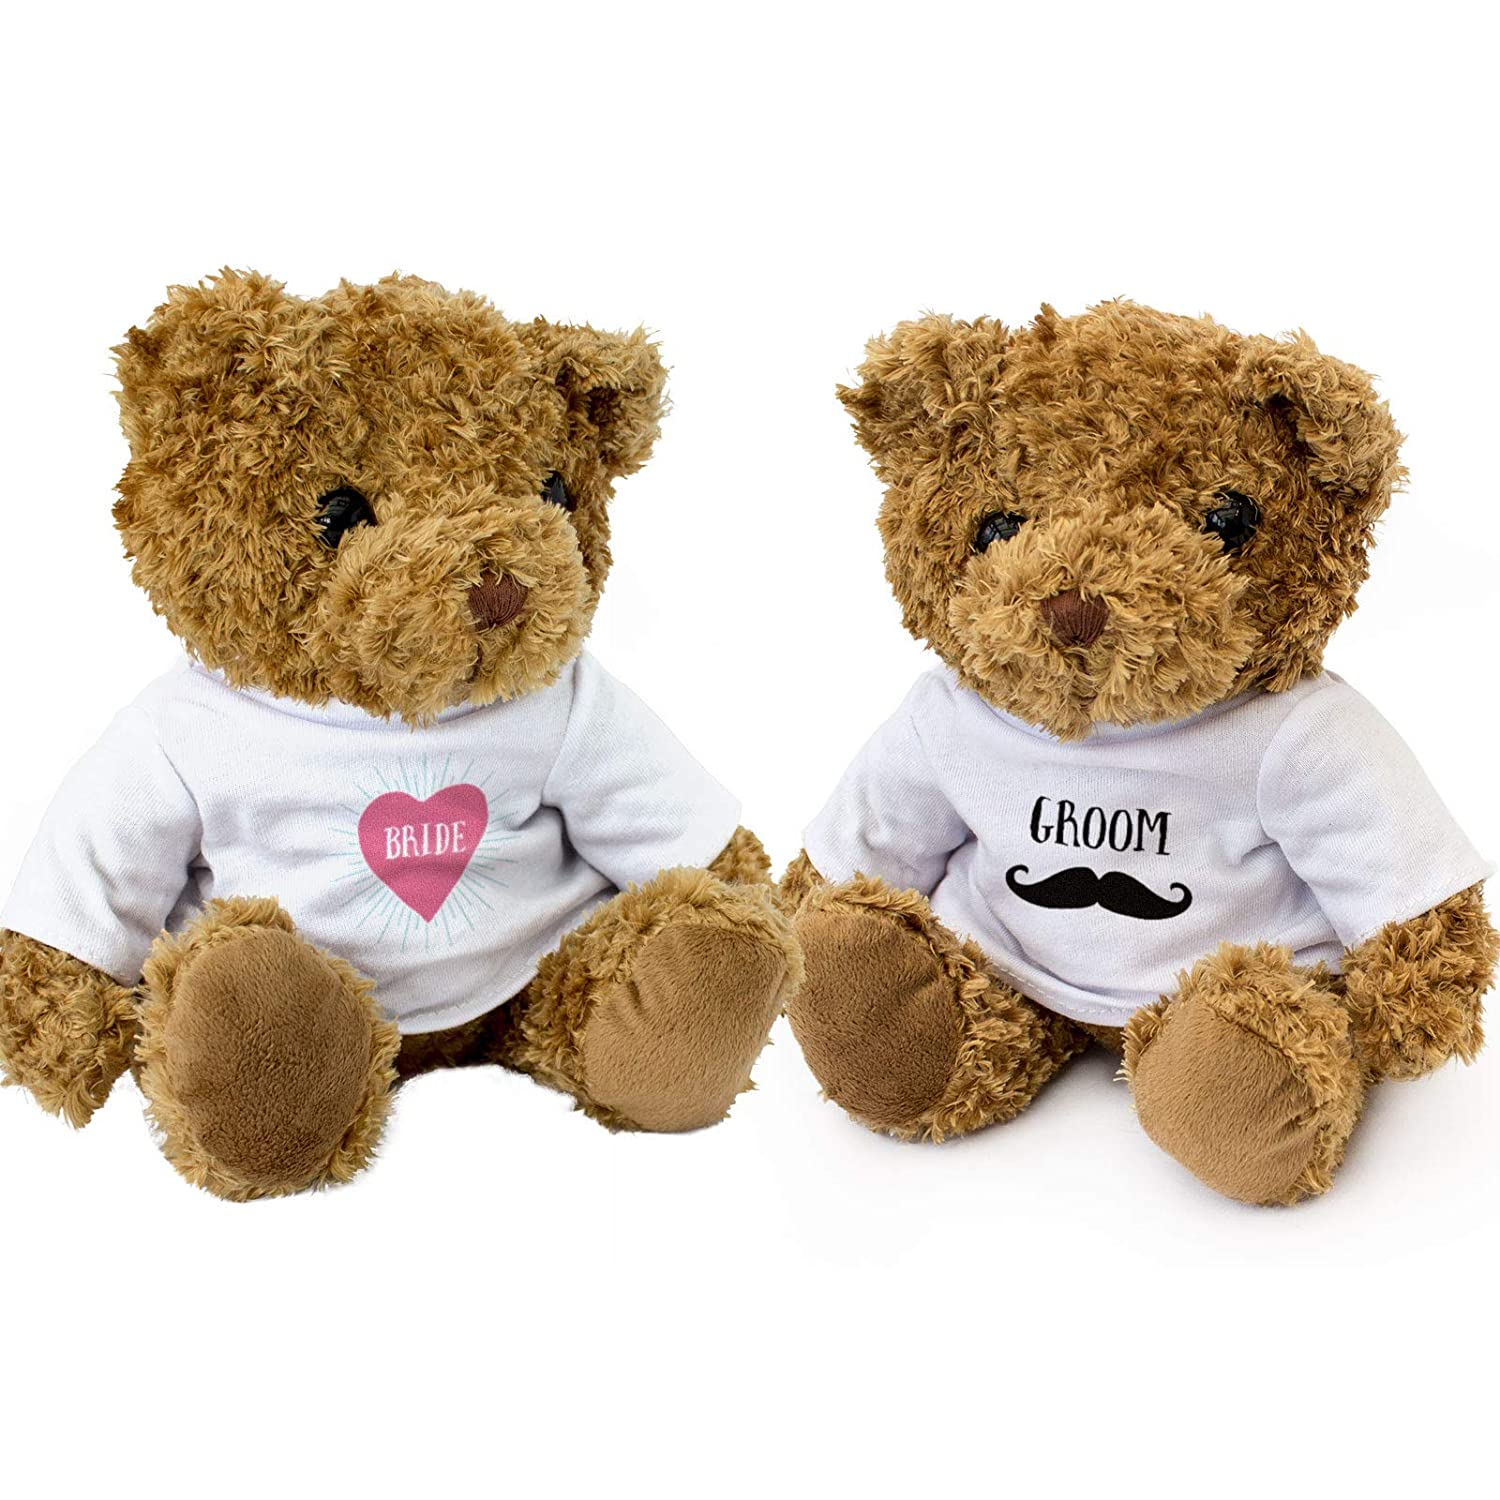 1d8fb76e961 Amazon.com  New - Bride and Groom Teddy Bears - Cute and Cuddly - Wedding  Present Gift  Toys   Games